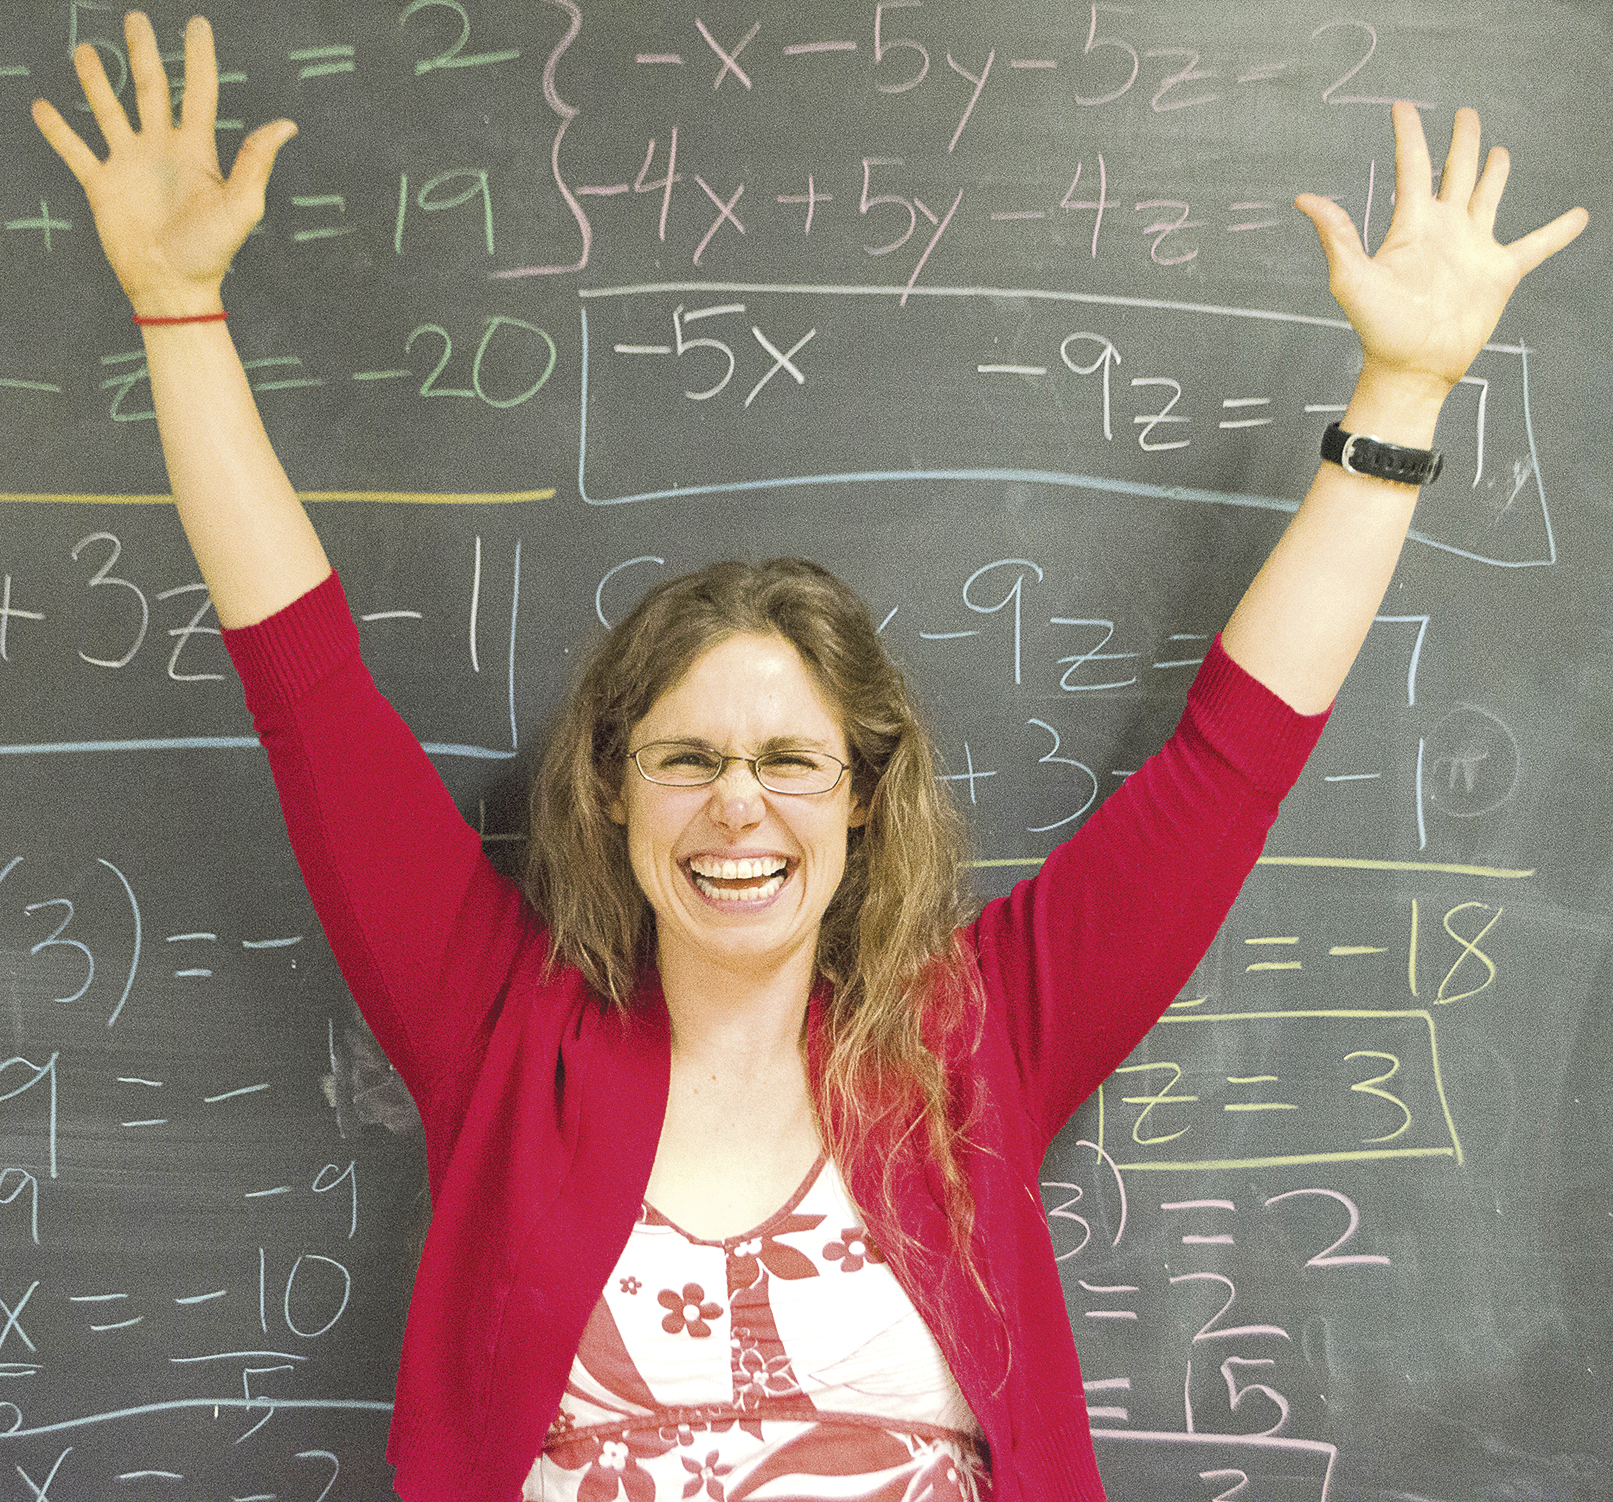 New math professor dives into new full-time position